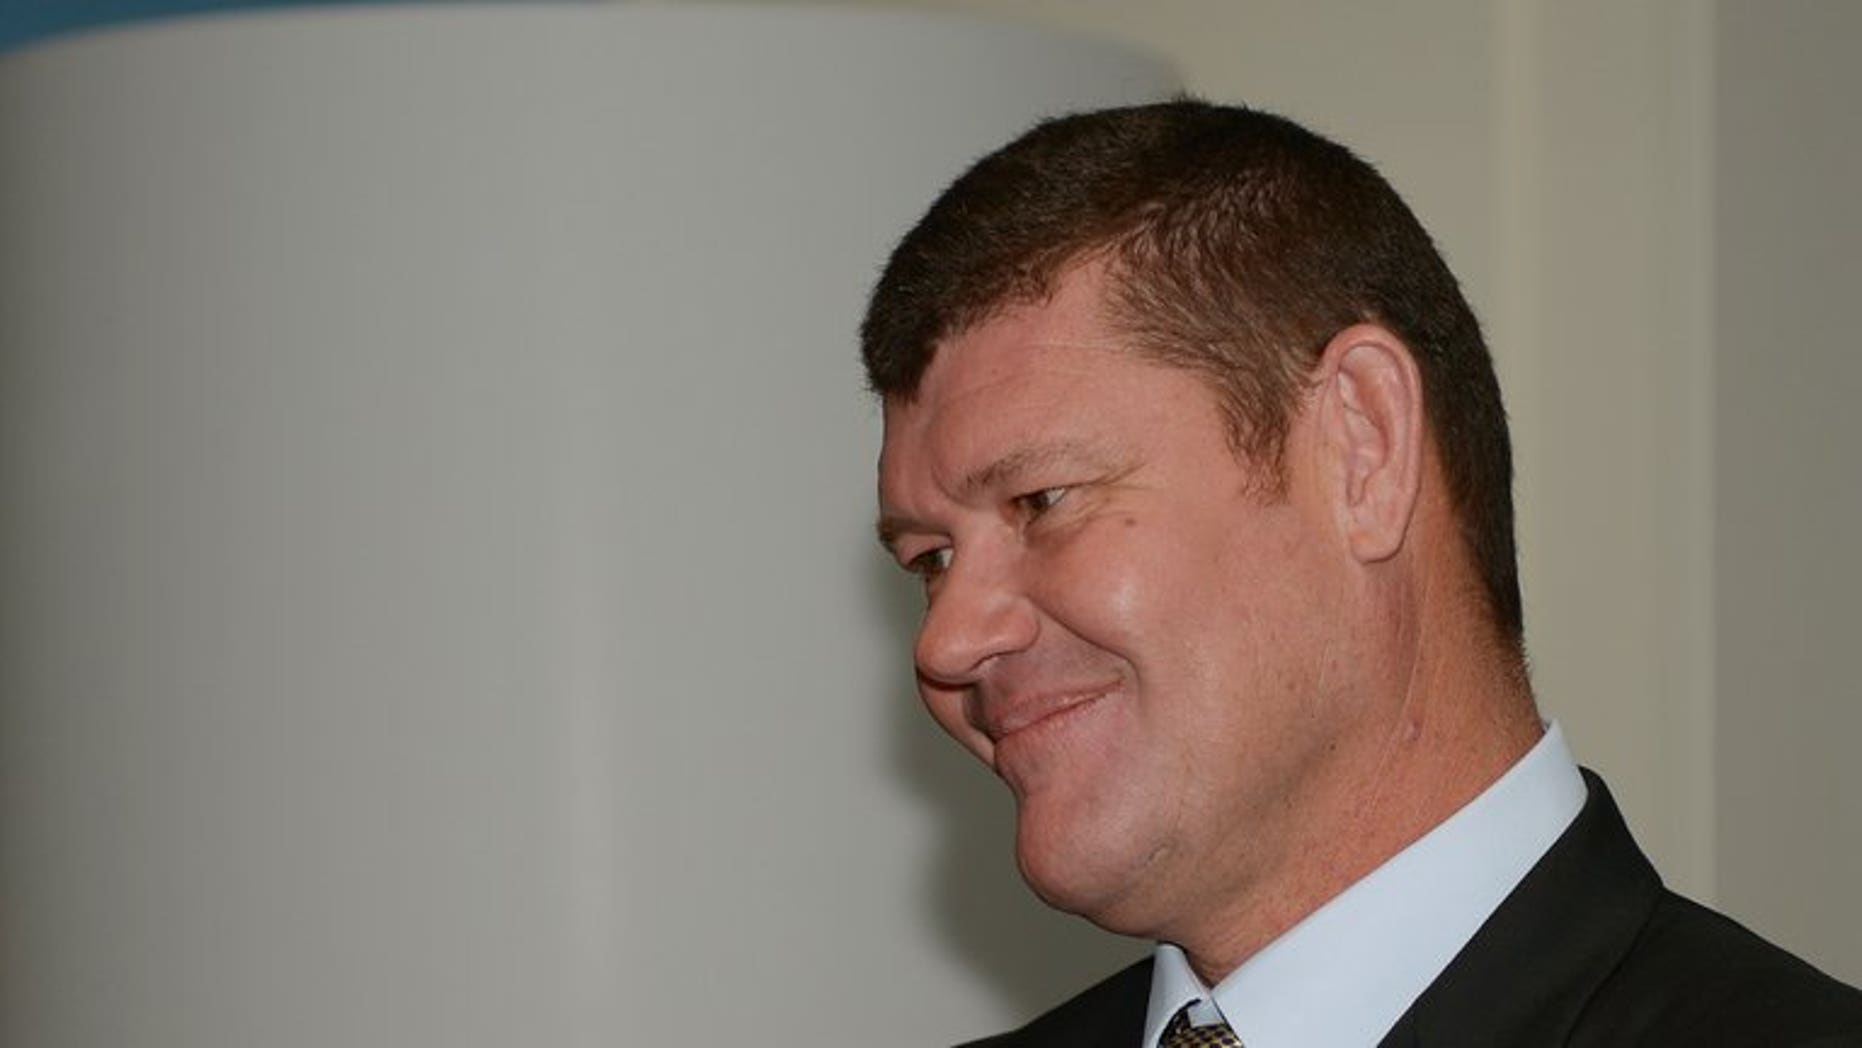 Australian billionaire James Packer in Sydney on July 23, 2013. He and his second wife Erica Baxter have announced their separation after six years of marriage.